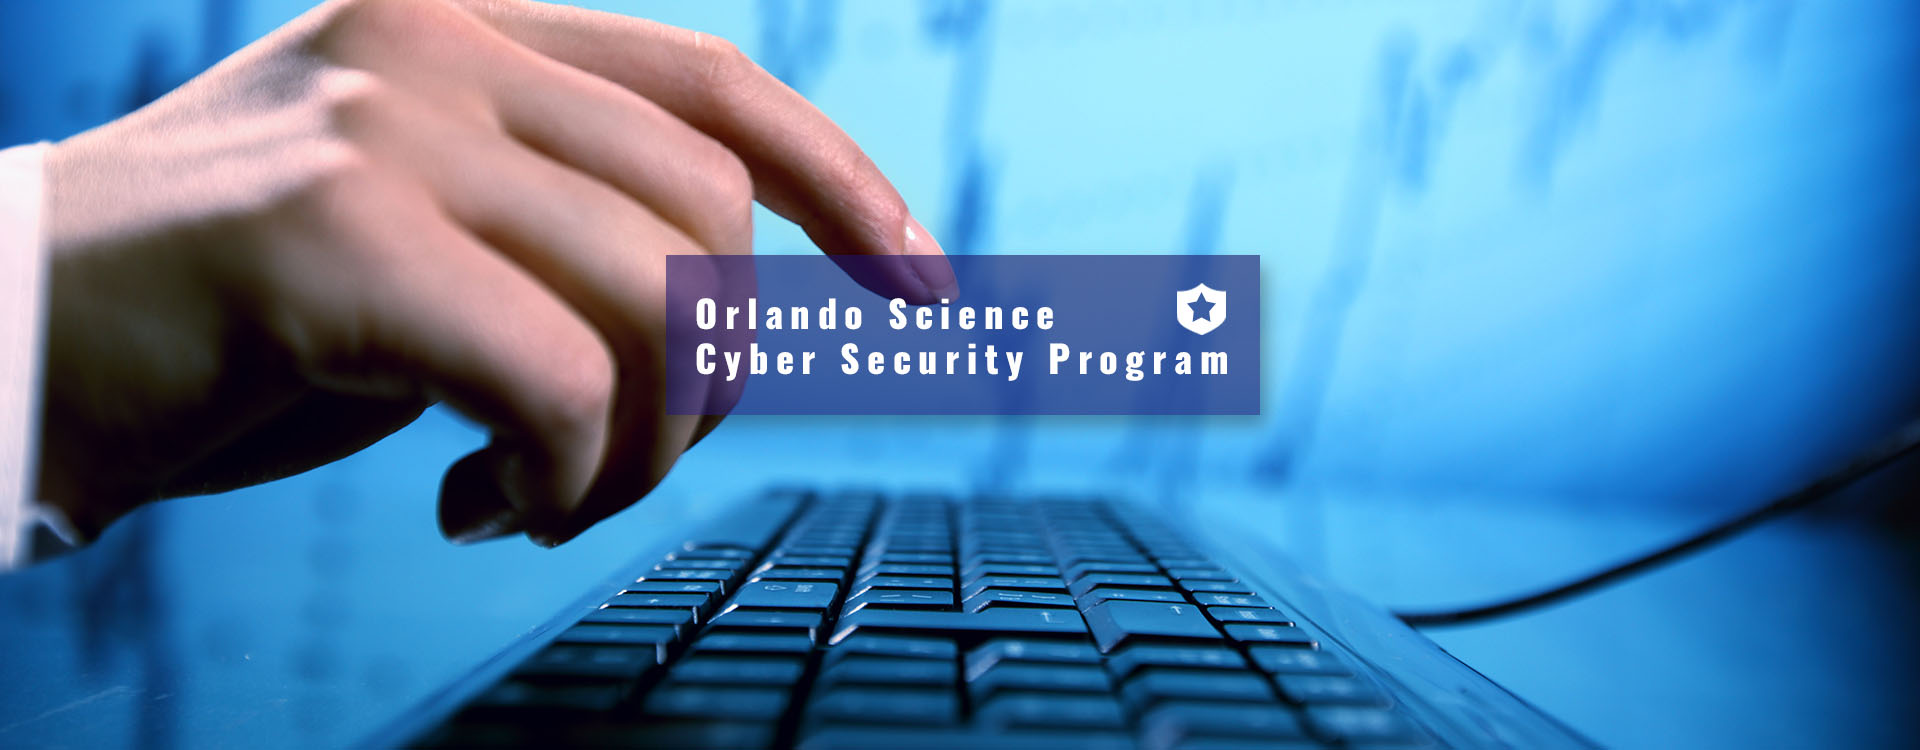 cyber-security-program